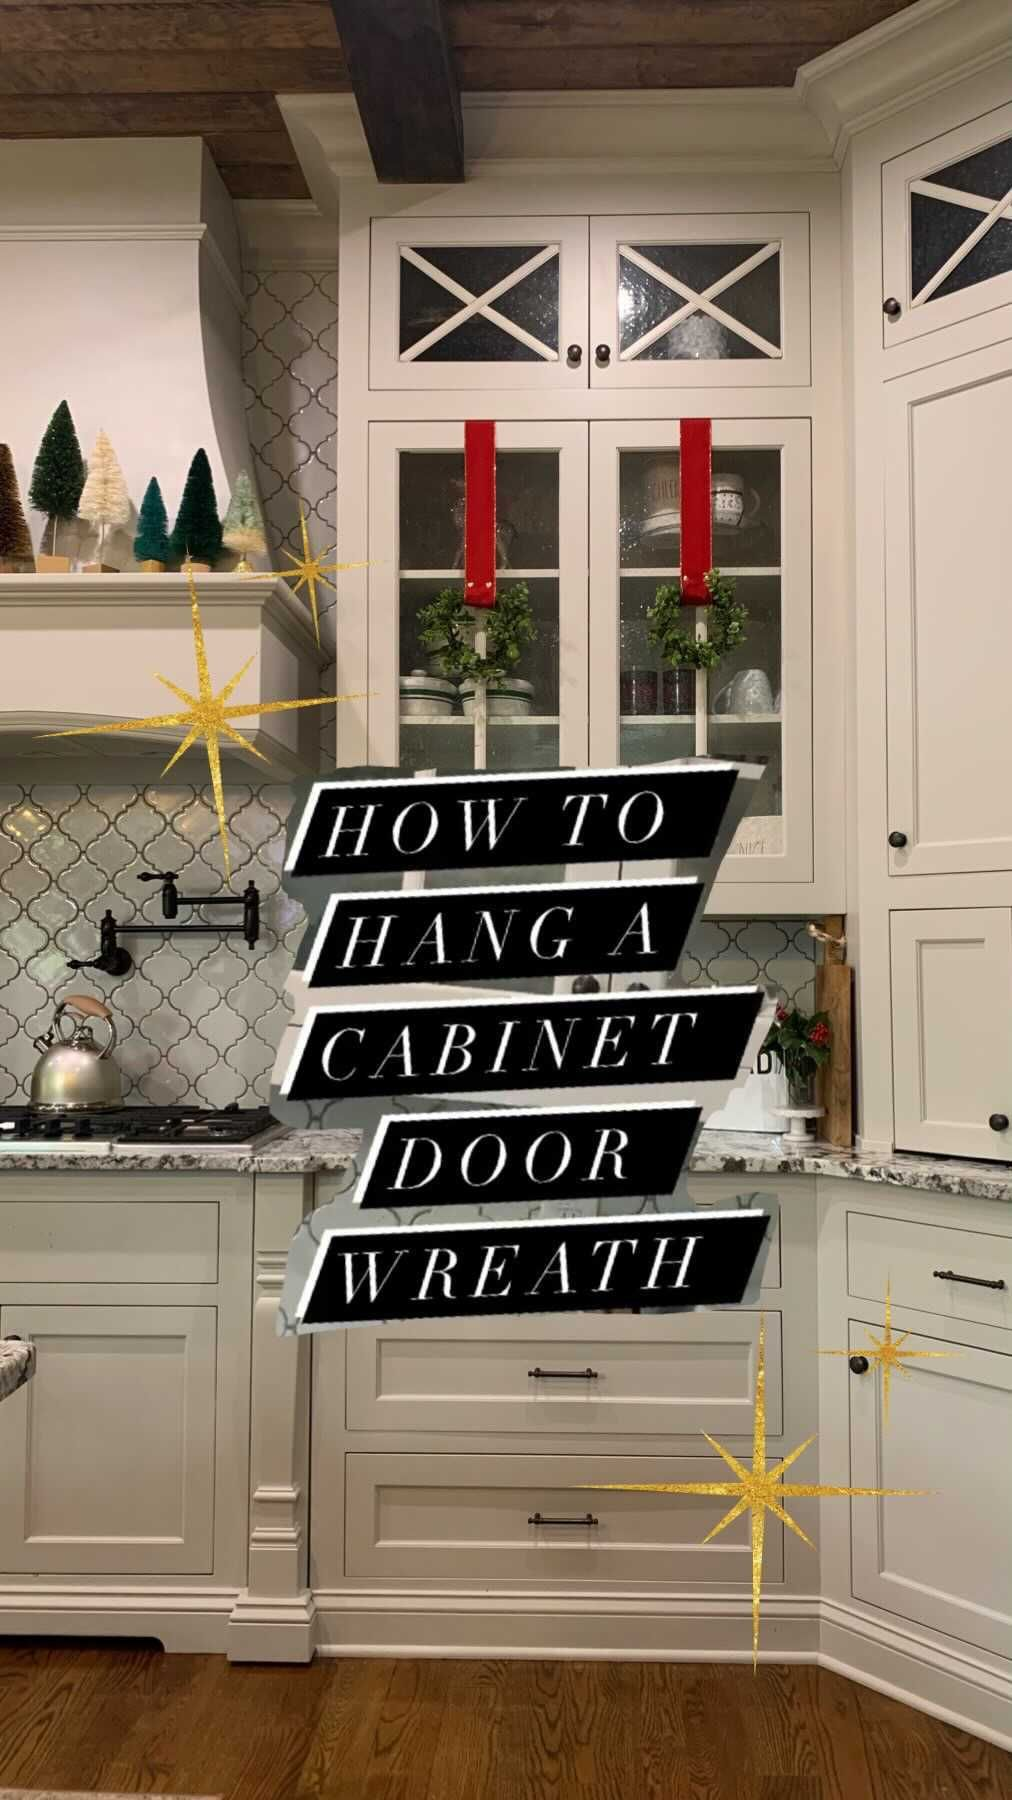 Mygeorgiahouse On Instagram How To Christmas Edition Hanging Wreaths On Cabinet Doors In A Few Simple Steps B Hanging Wreath Cabinet Doors Cabinet